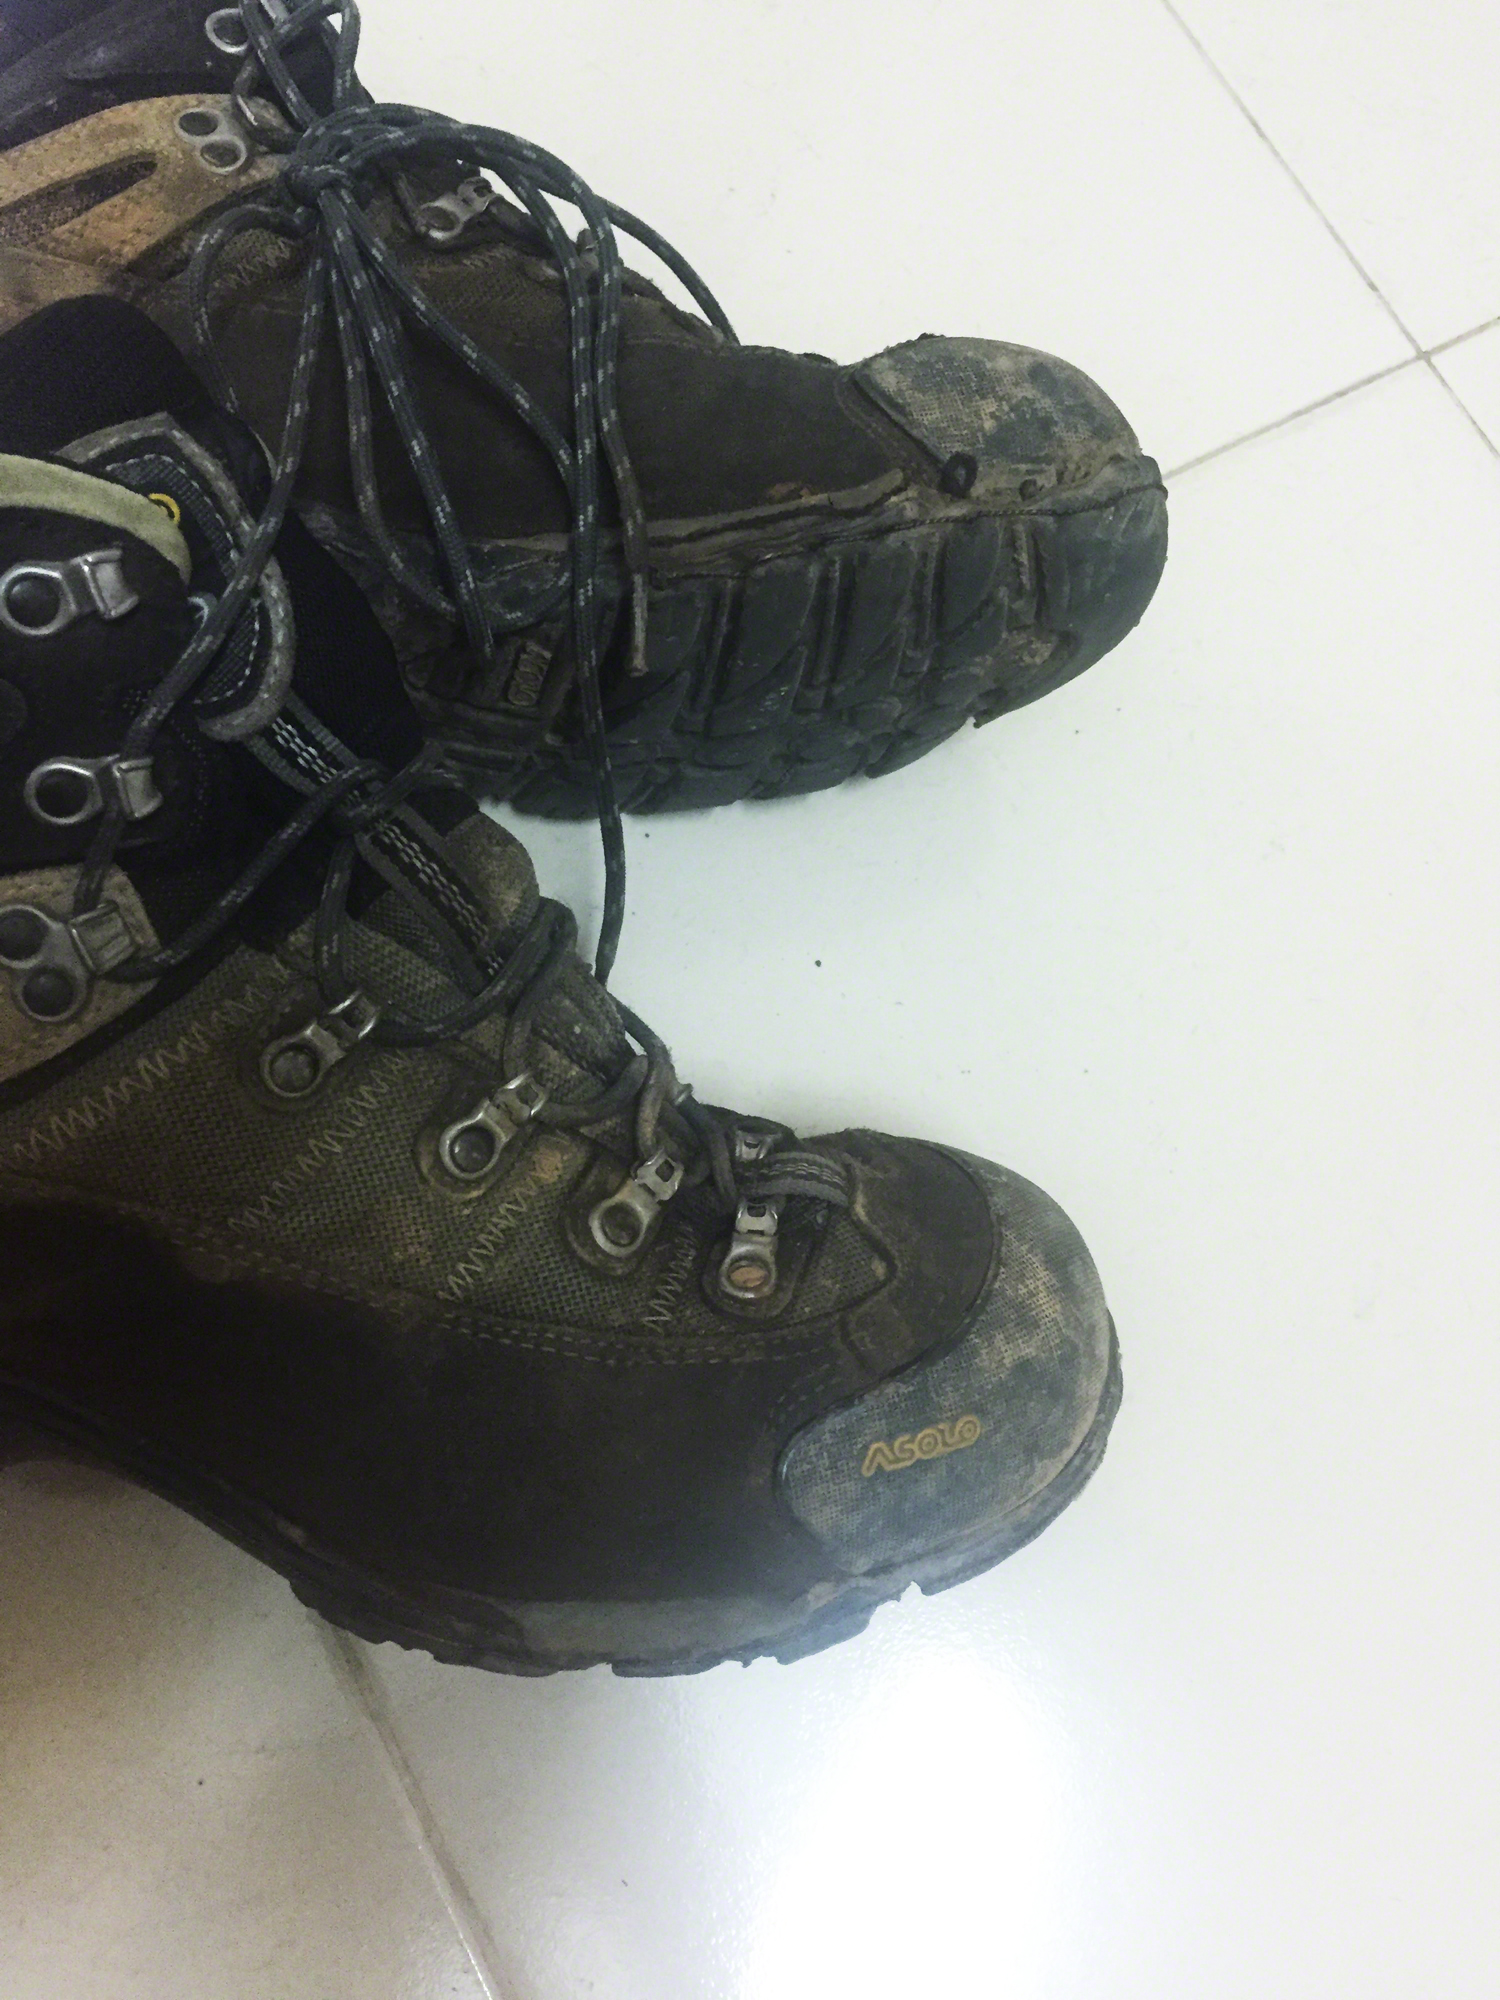 boots repaired